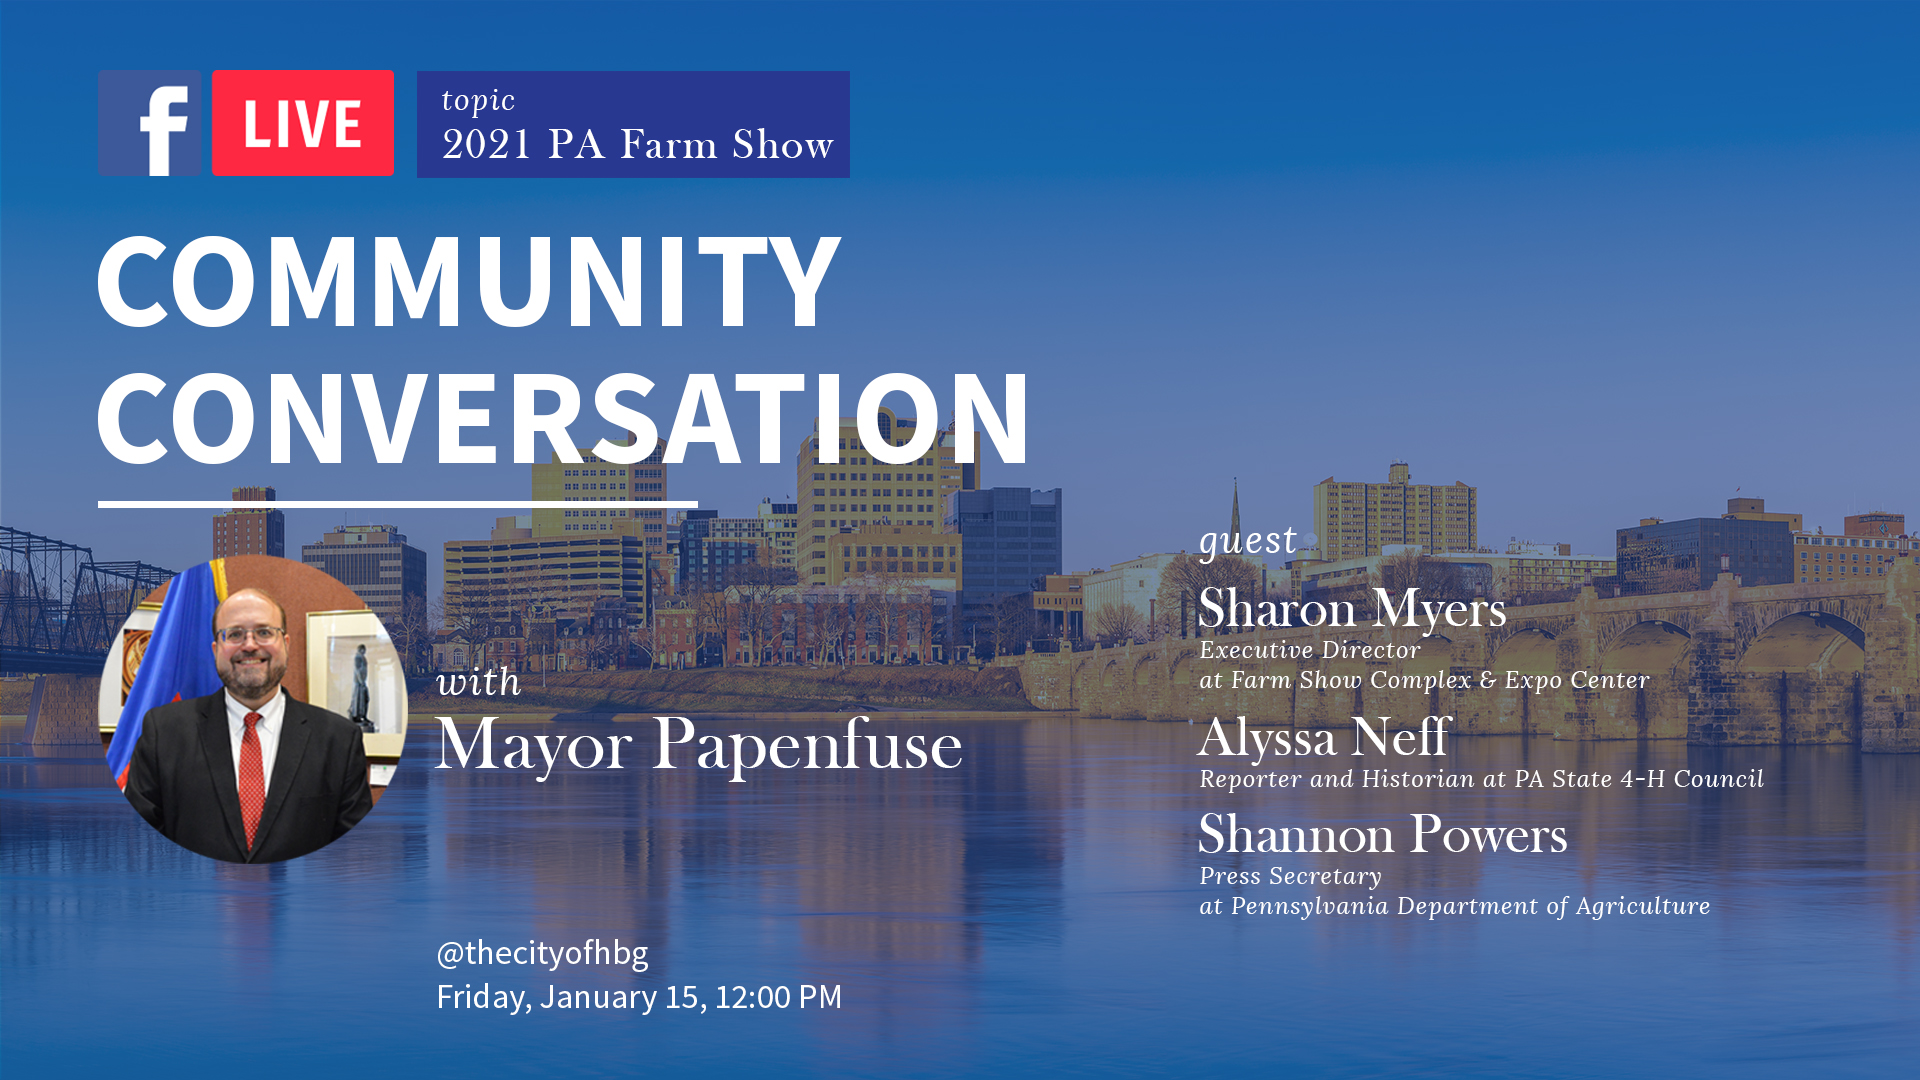 Mayor Papenfuse to Lead Live Discussion on 2021 PA Farm Show